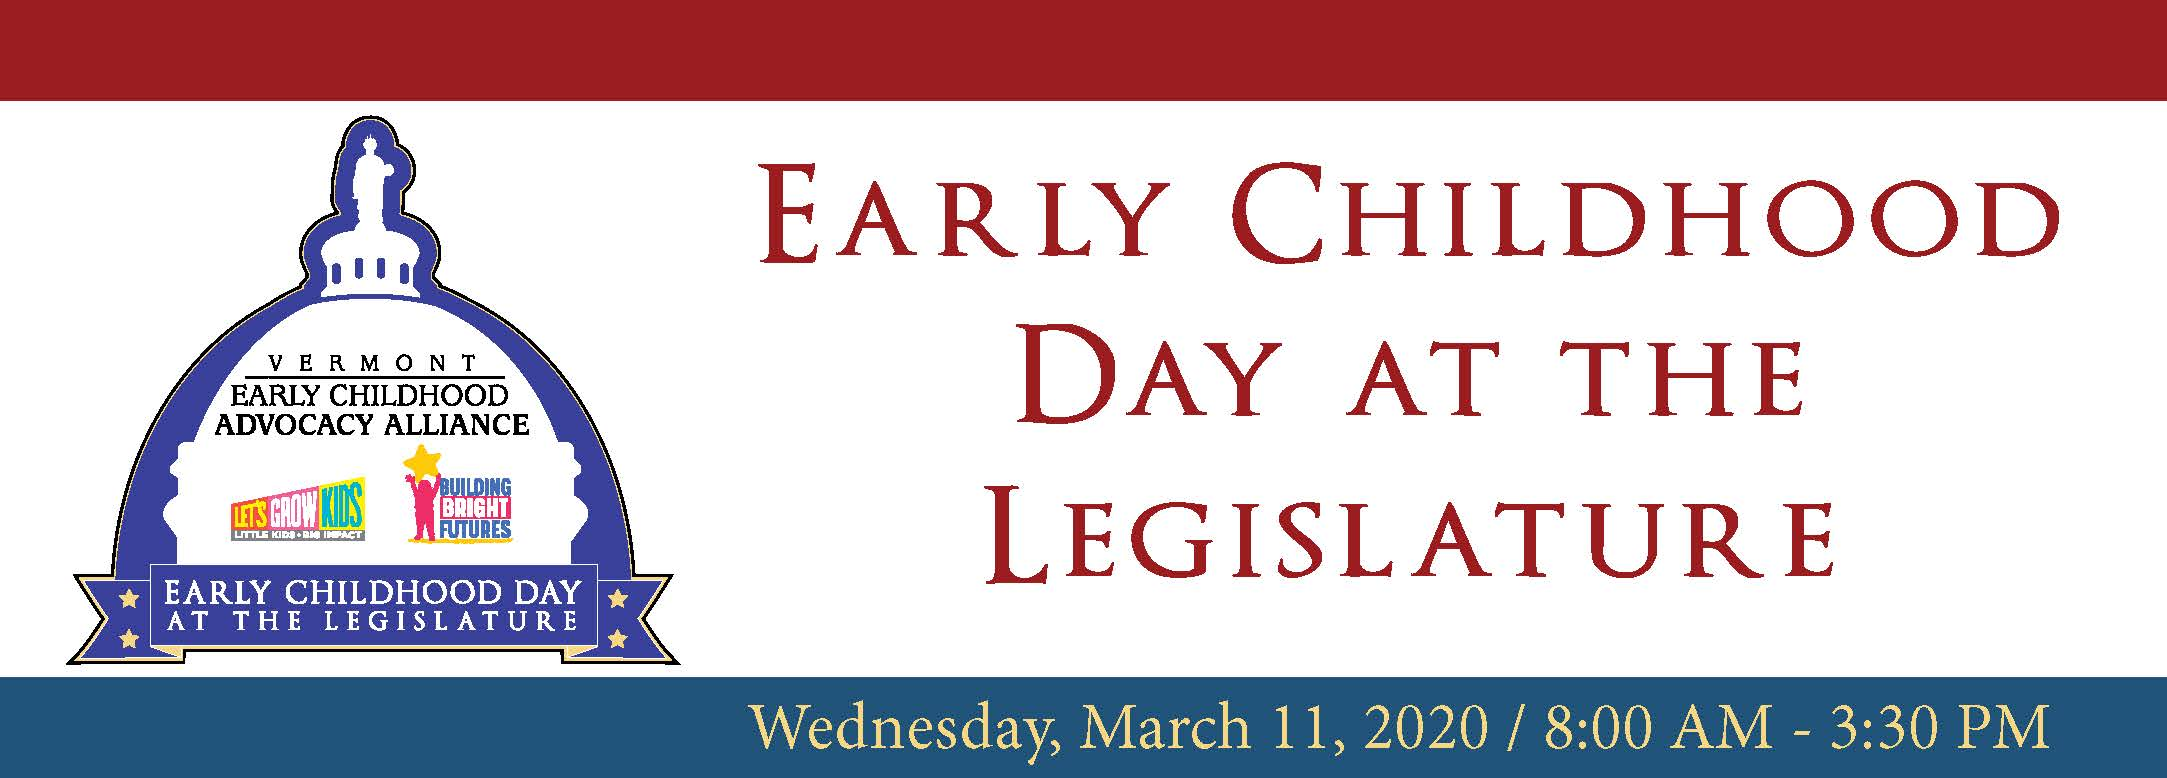 Early Childhood Day at the Legislature